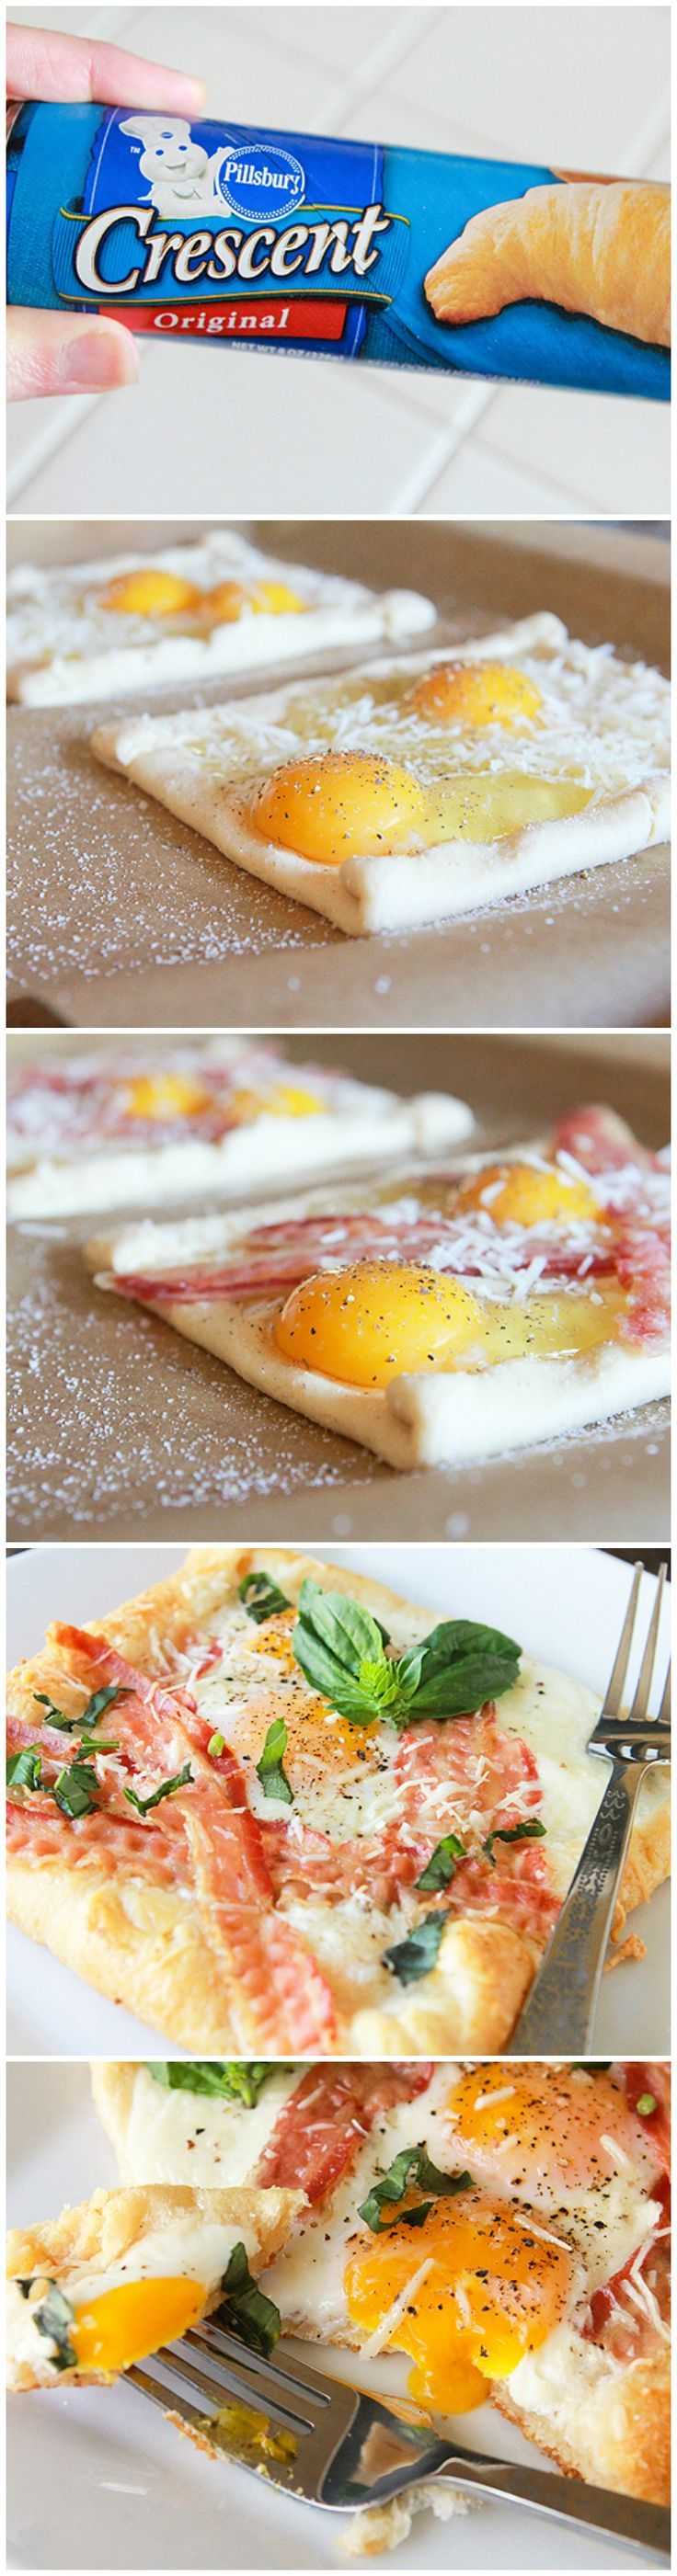 Bacon Egg & Crescent Squares. Quick and easy. You can substitute grated cheddar for the Parmesan. The basil adds extra flavor, but definitely not necessary for the overall dish.